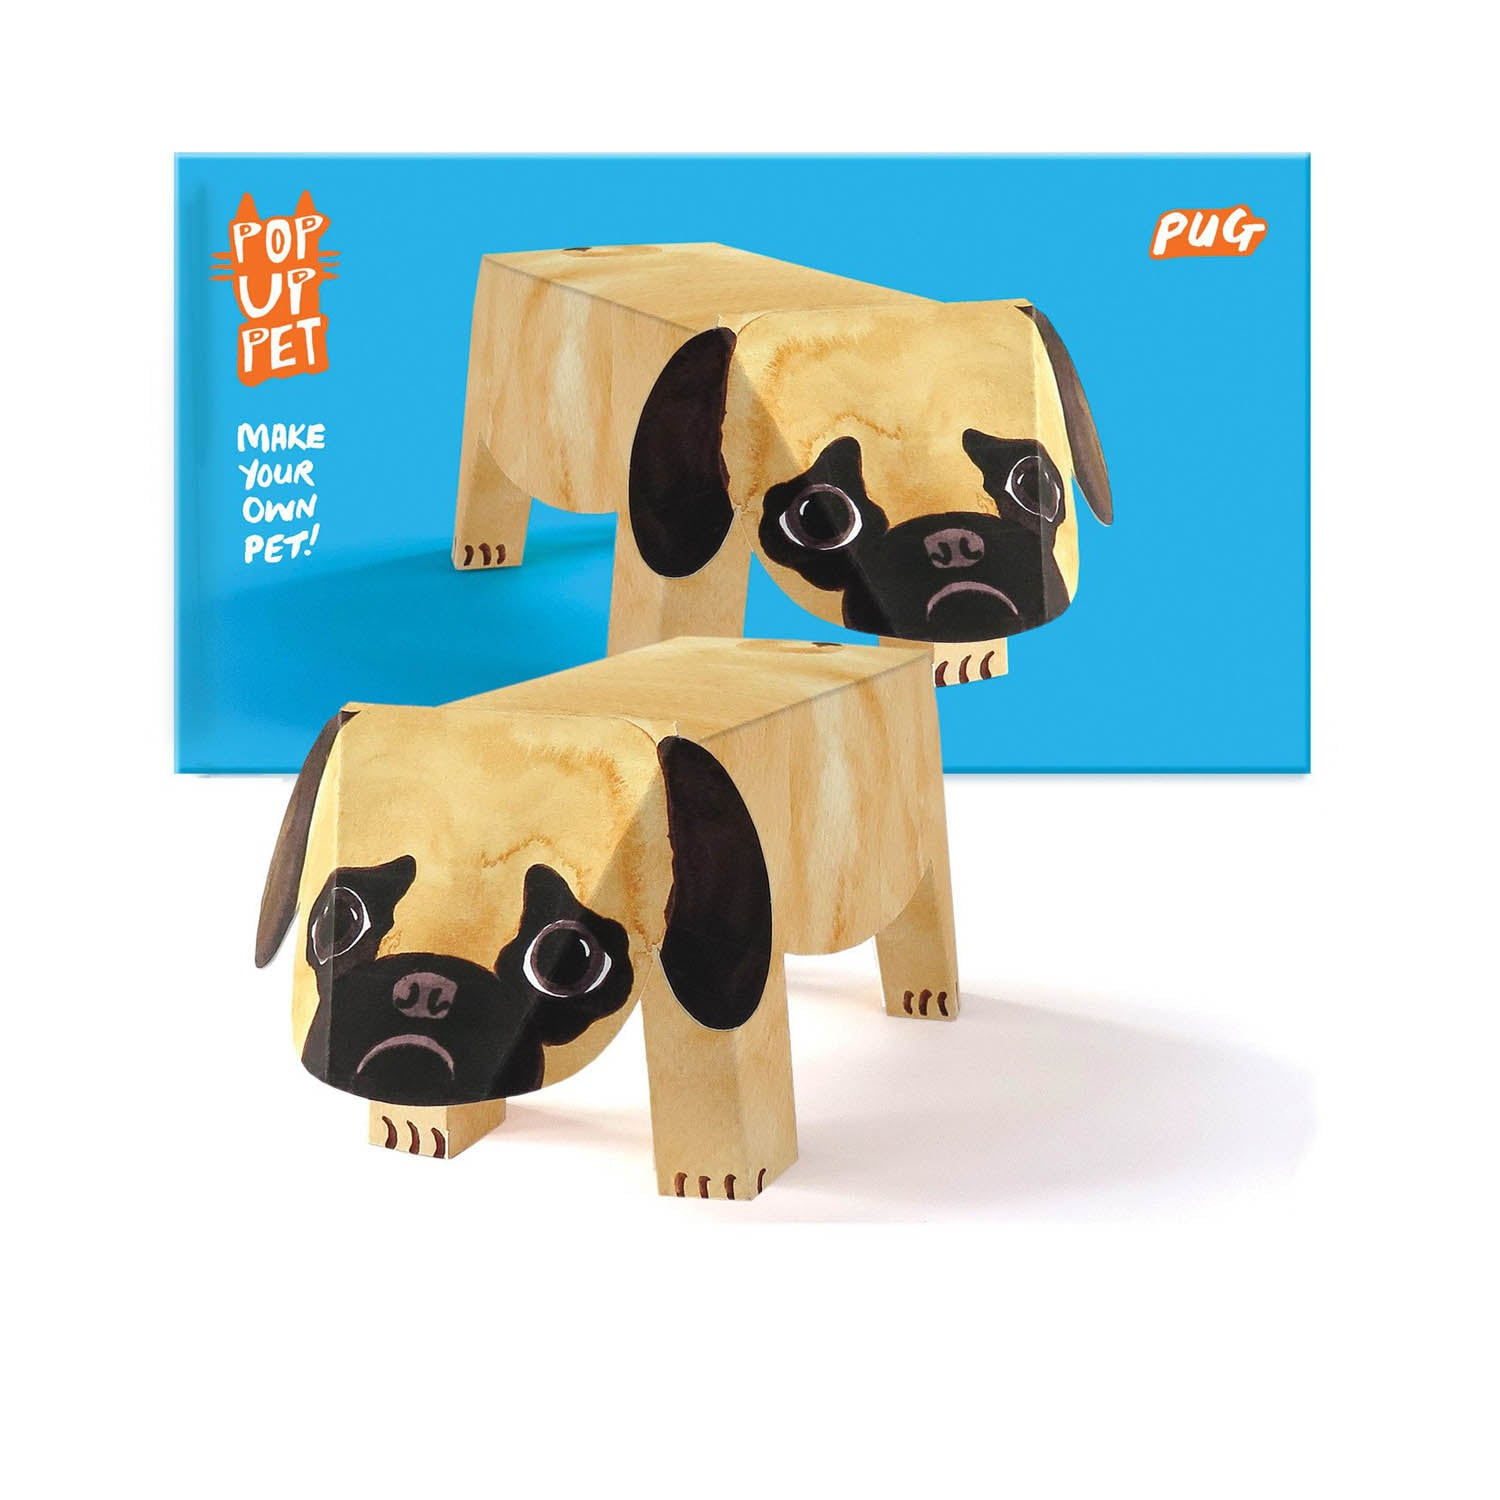 Dog Krazy Gifts - Pug Pop Up Pet, part of the range of Pug themed gifts available from DogKrazyGifts.co.uk